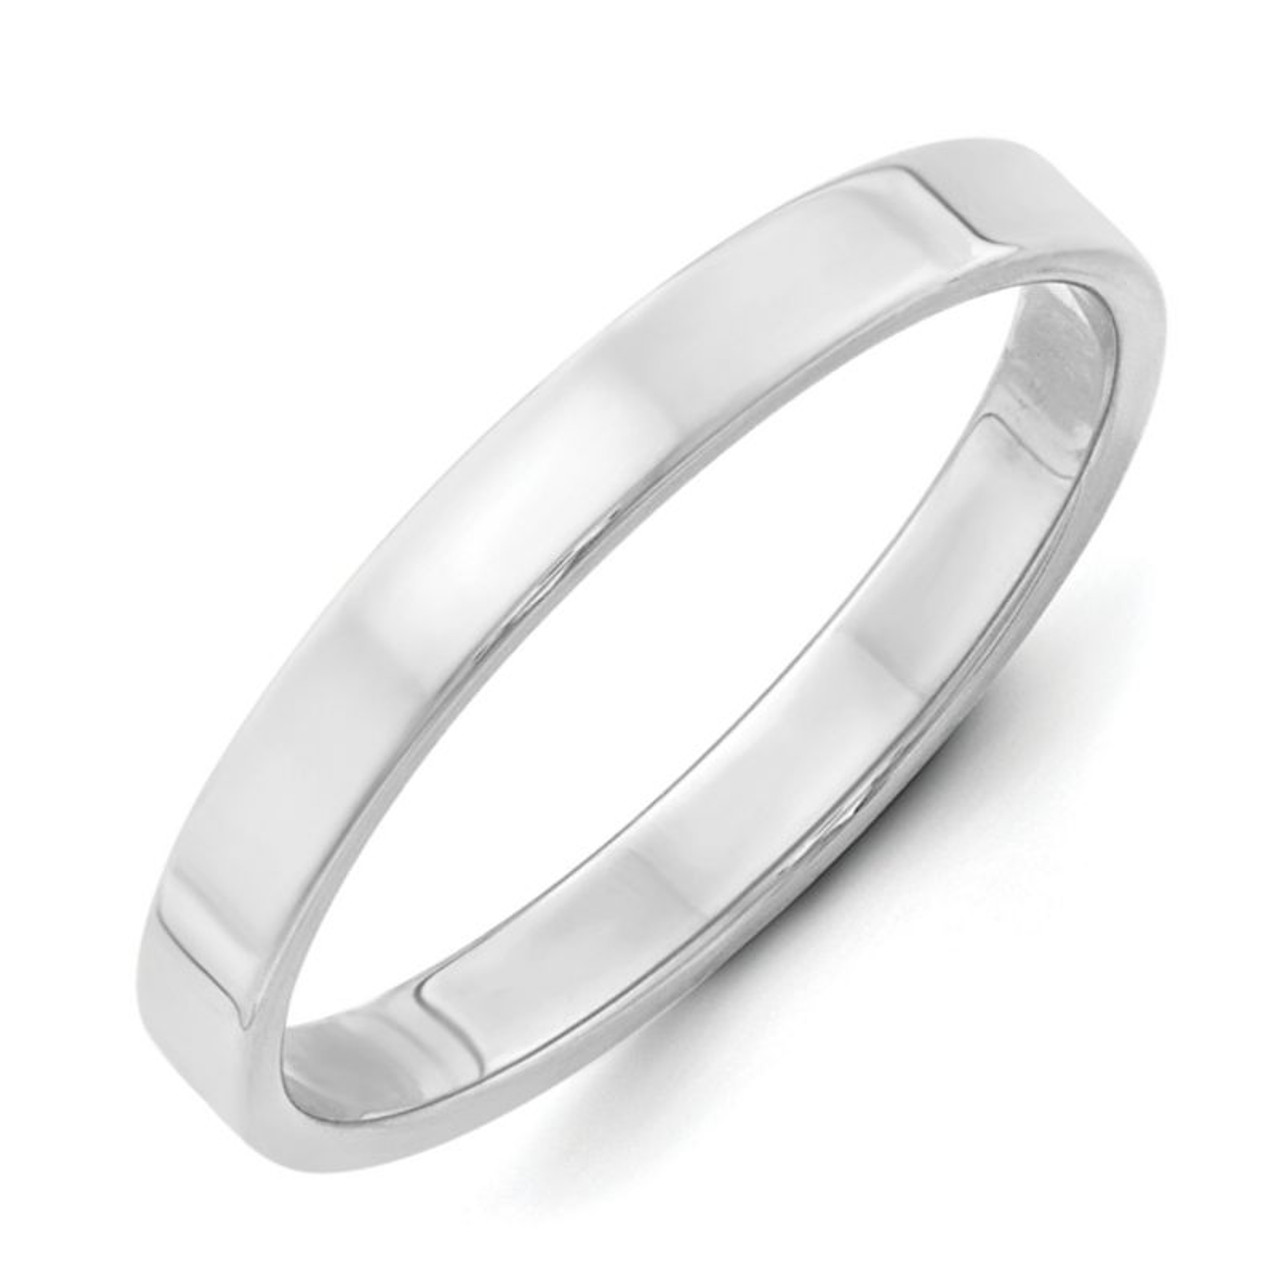 Silver 6mm Ladies or Mens Flat Wedding Band Flat Design 925 Sterling Silver Classic Wedding Ring Great for Anniversary or Promose Ring